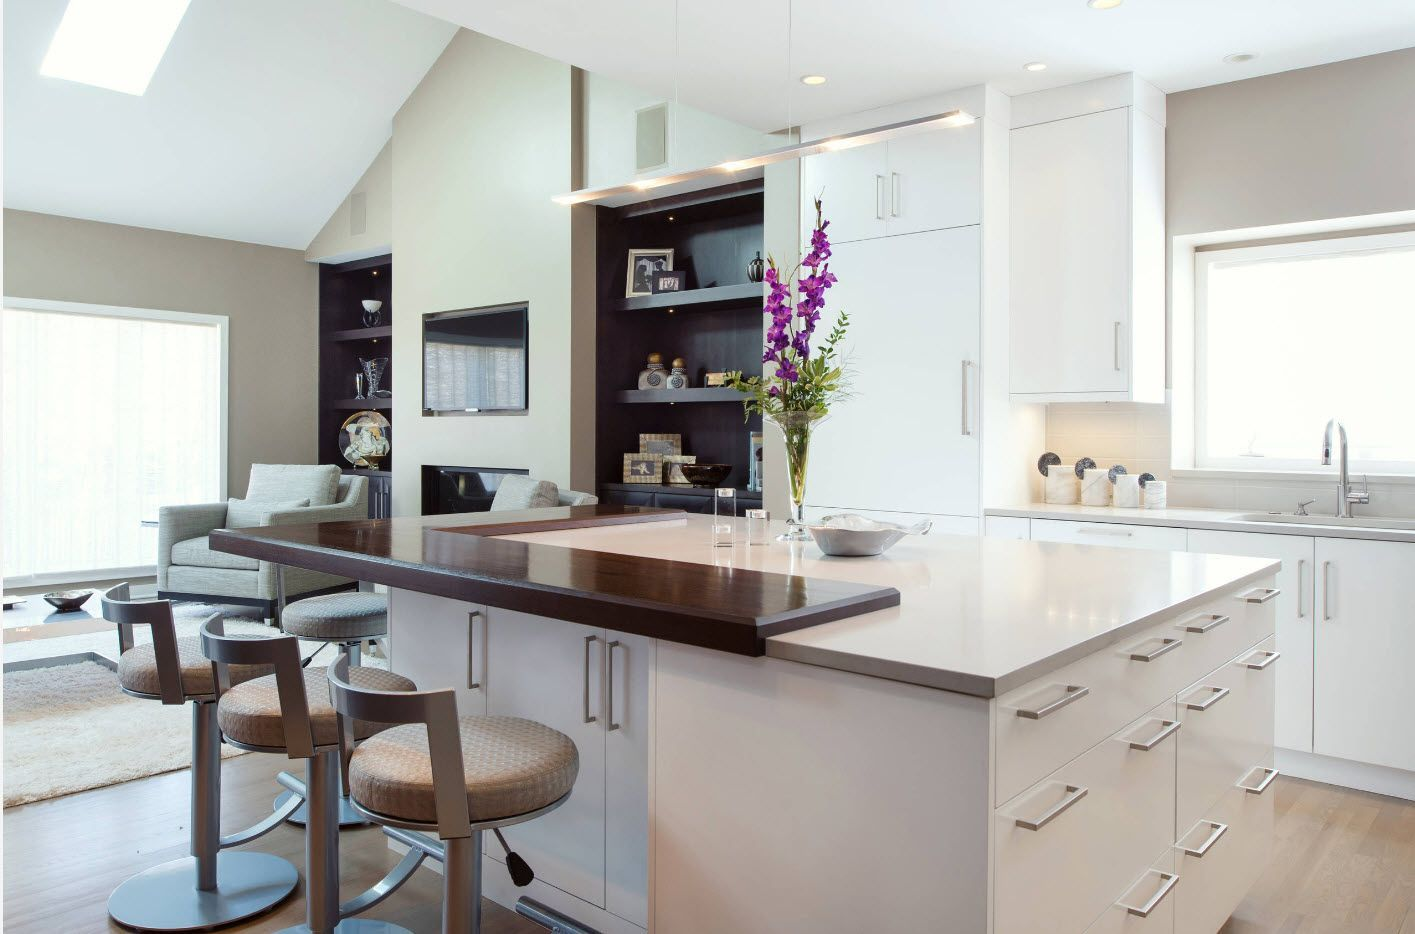 Loft and hi-tech combination of styles for the open layout kitchen with large island